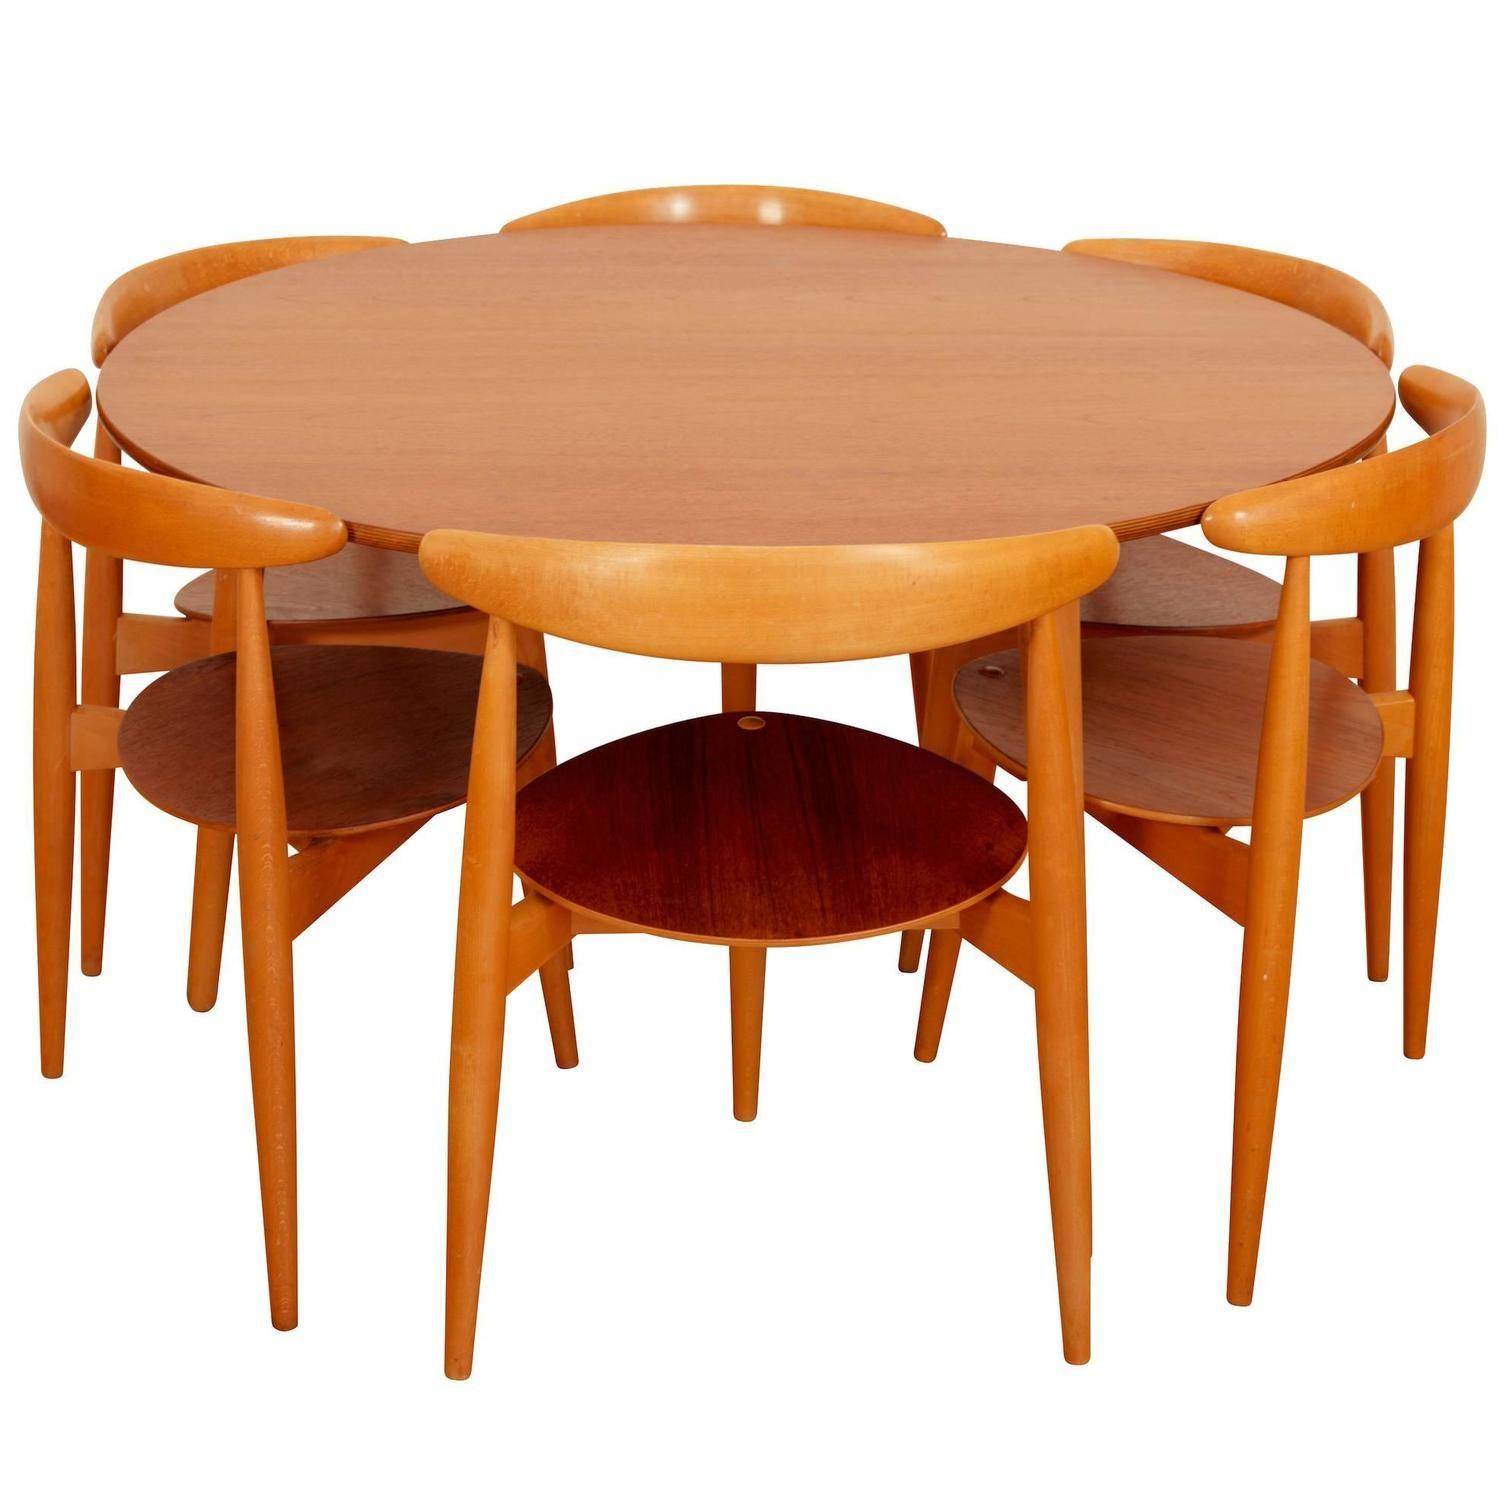 Teak Barrel Table With Nesting Chairs At West End Barrel